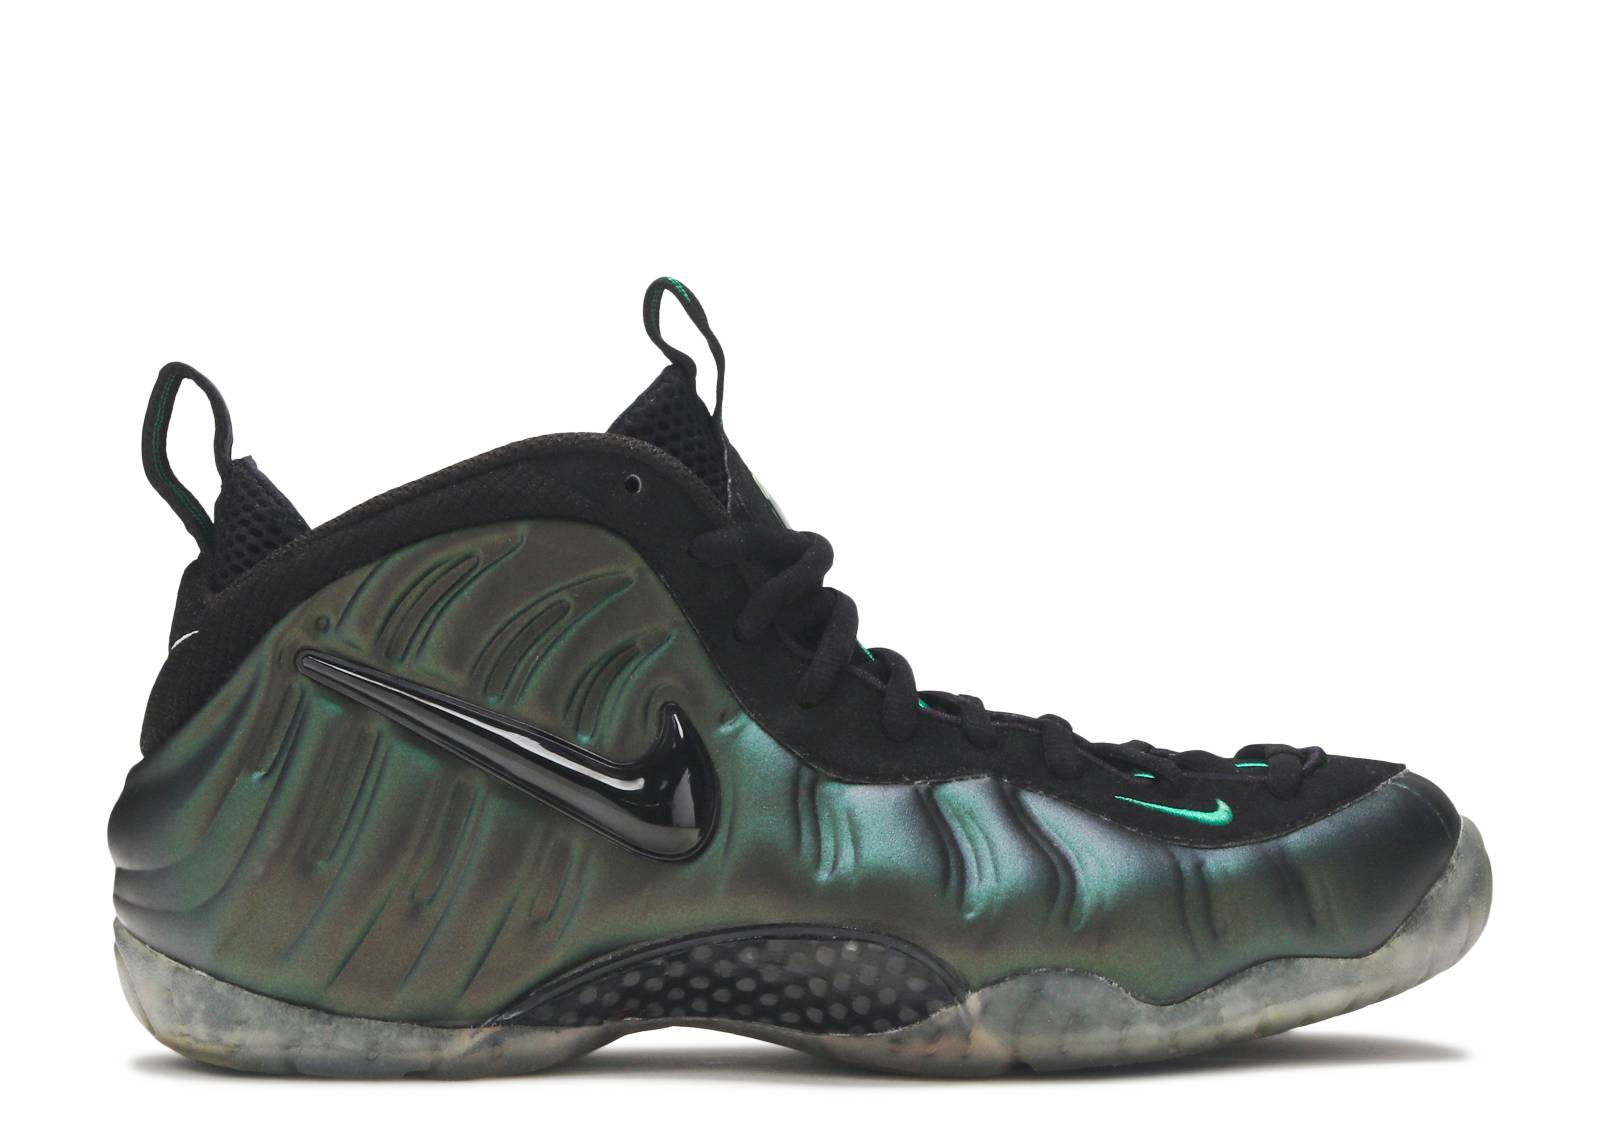 Discount 195454 Nike Air Flightposite 1 Men Dark Pine Green Shoes